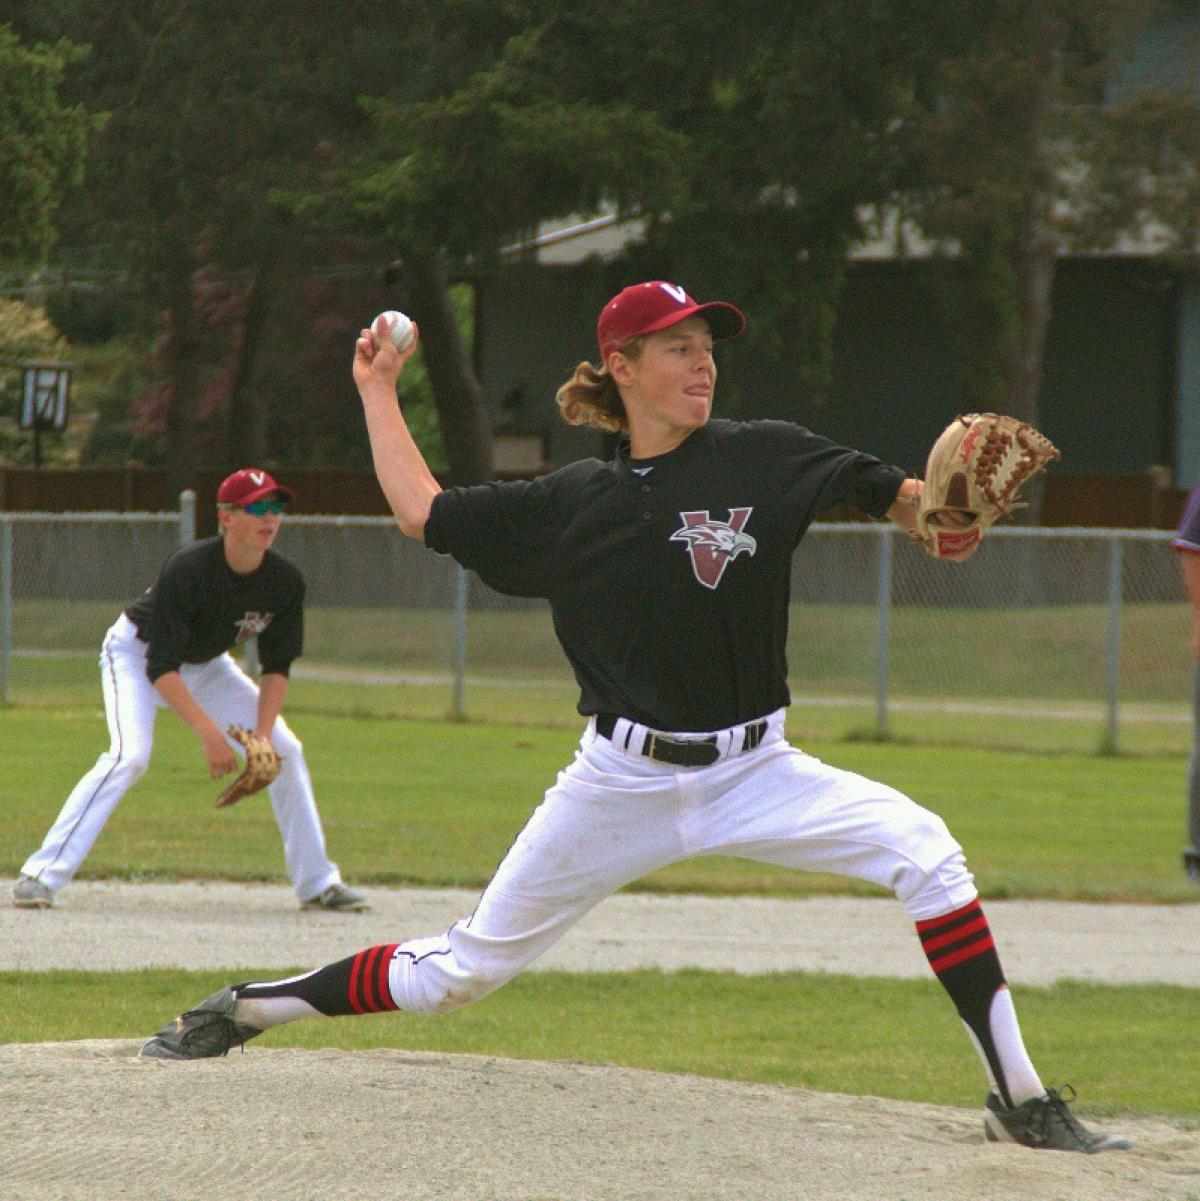 (Loss) Black Eagles 2, Kamloops 3;  (Win) Black Eagles 6, Kamloops 3